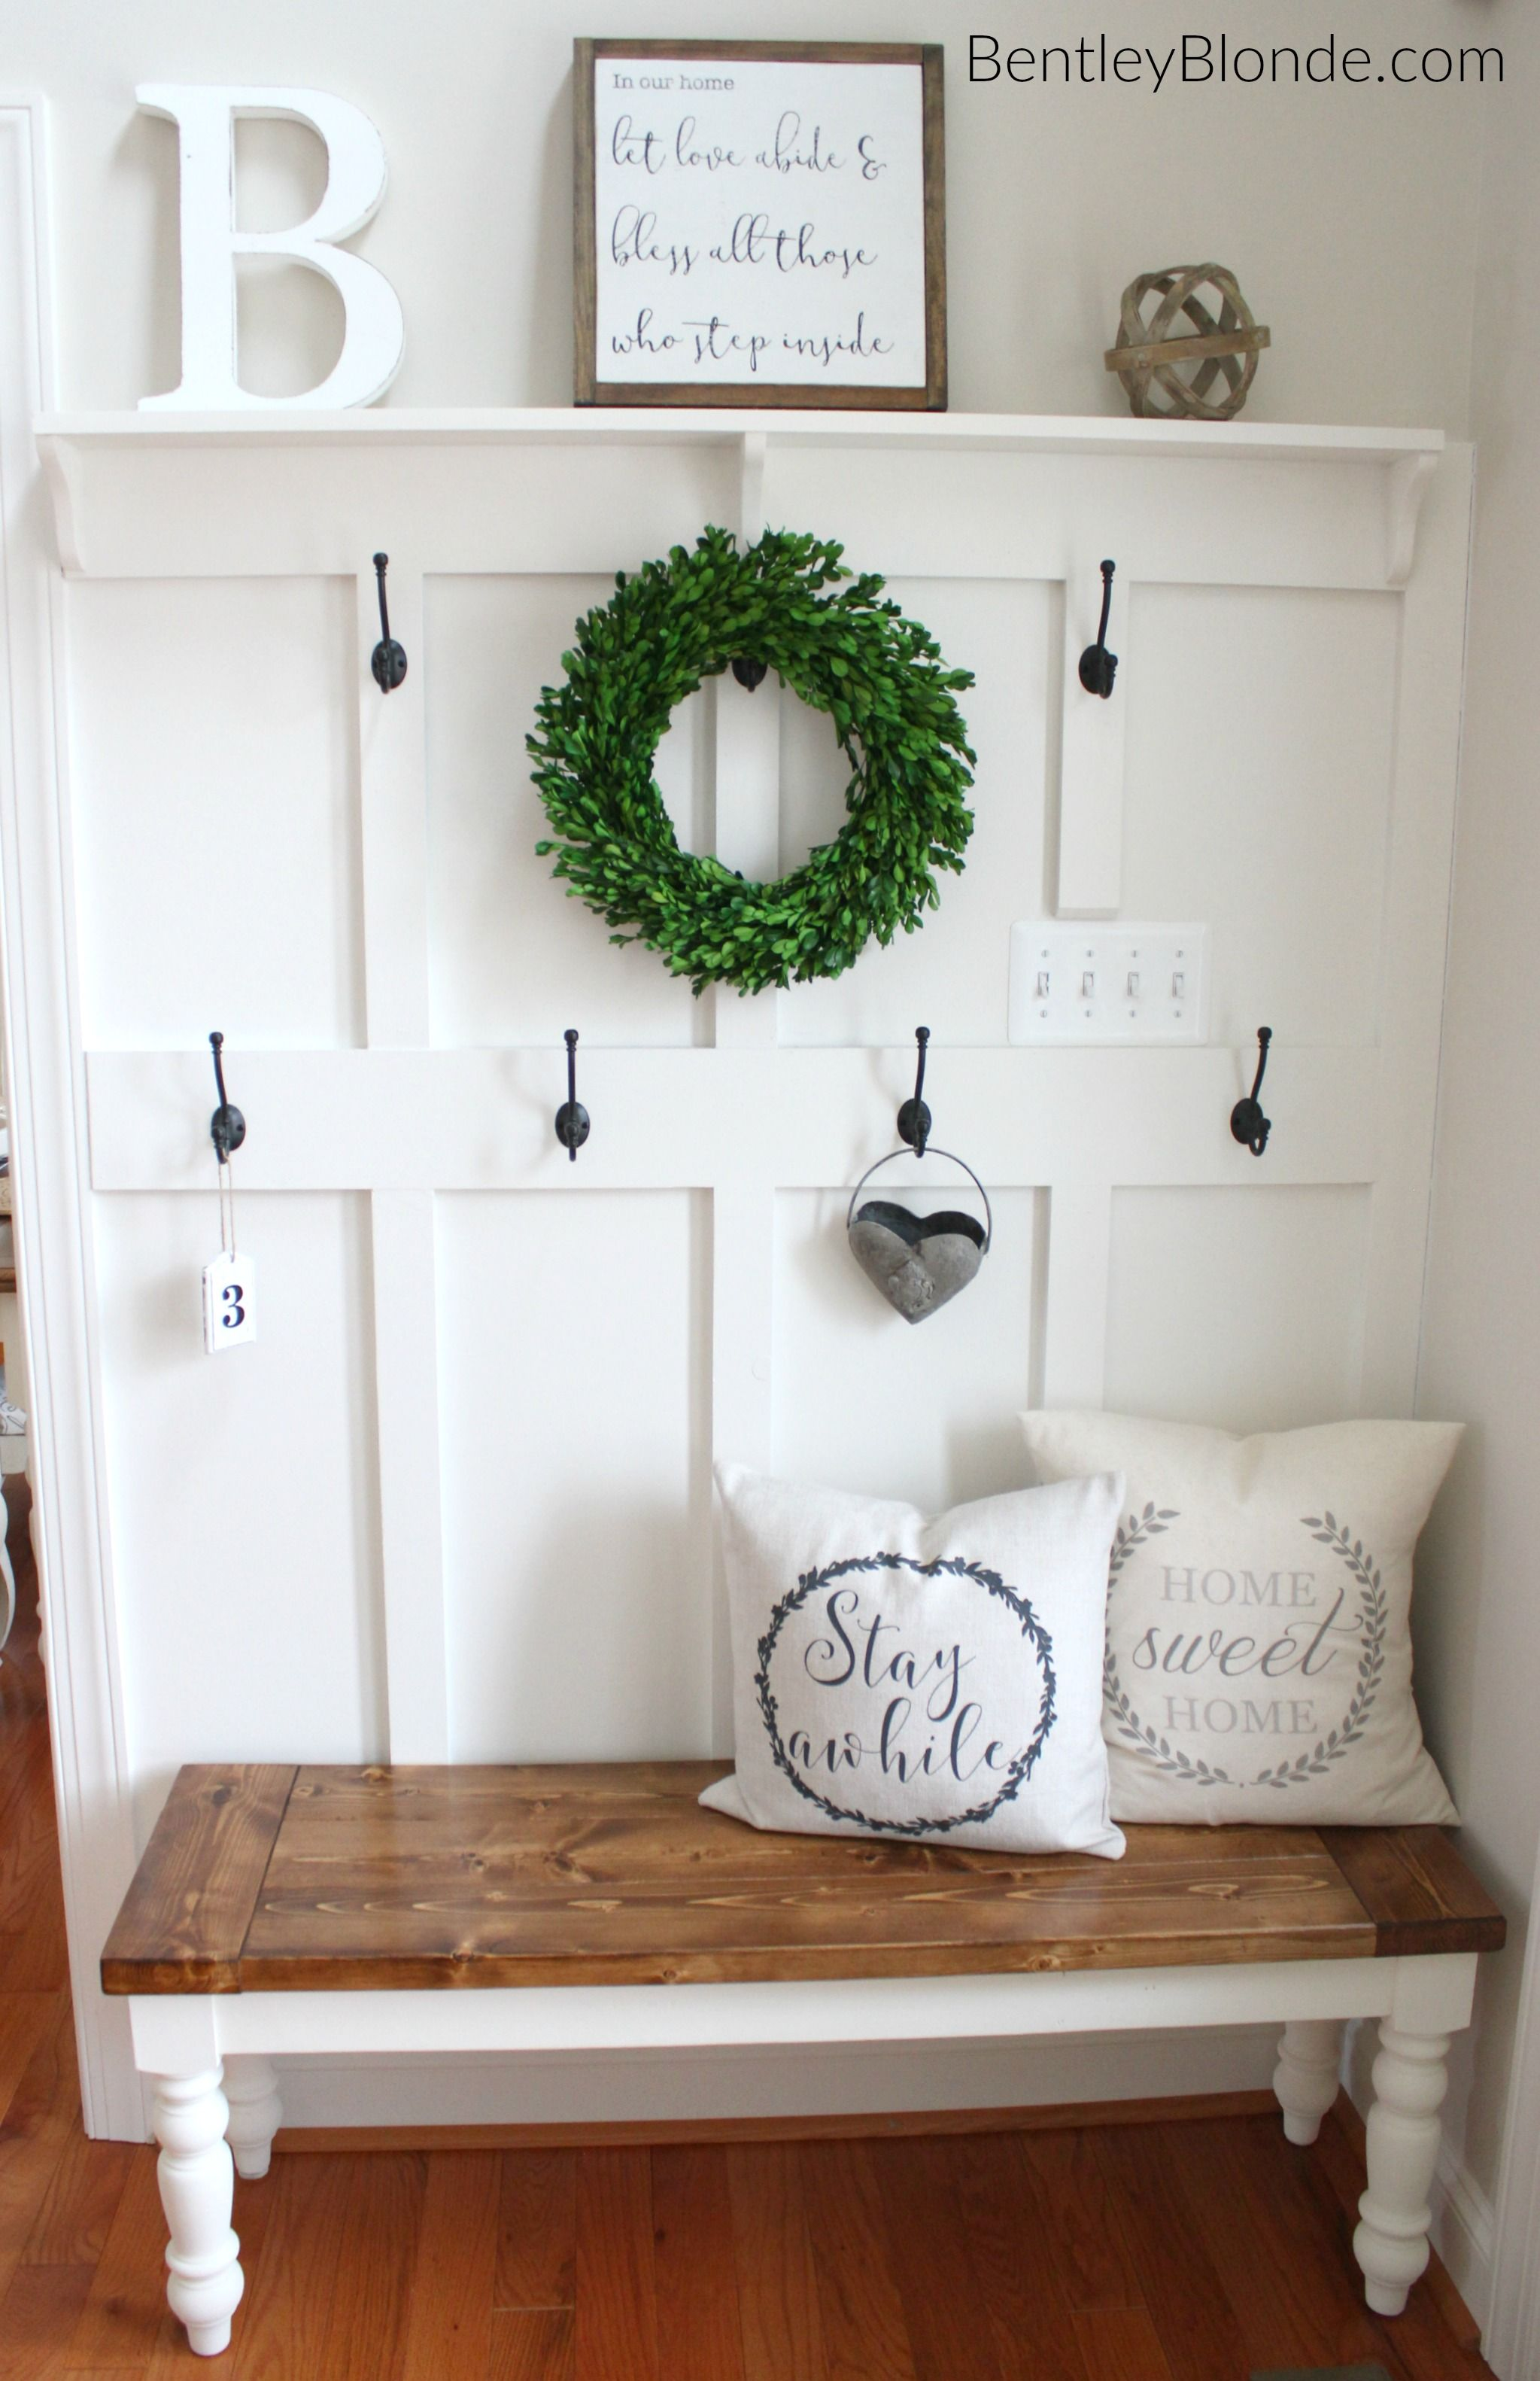 Diy Farmhouse Bench Tutorial Farmhouse Bench Diy Entryway Decor Small Diy Entryway Bench